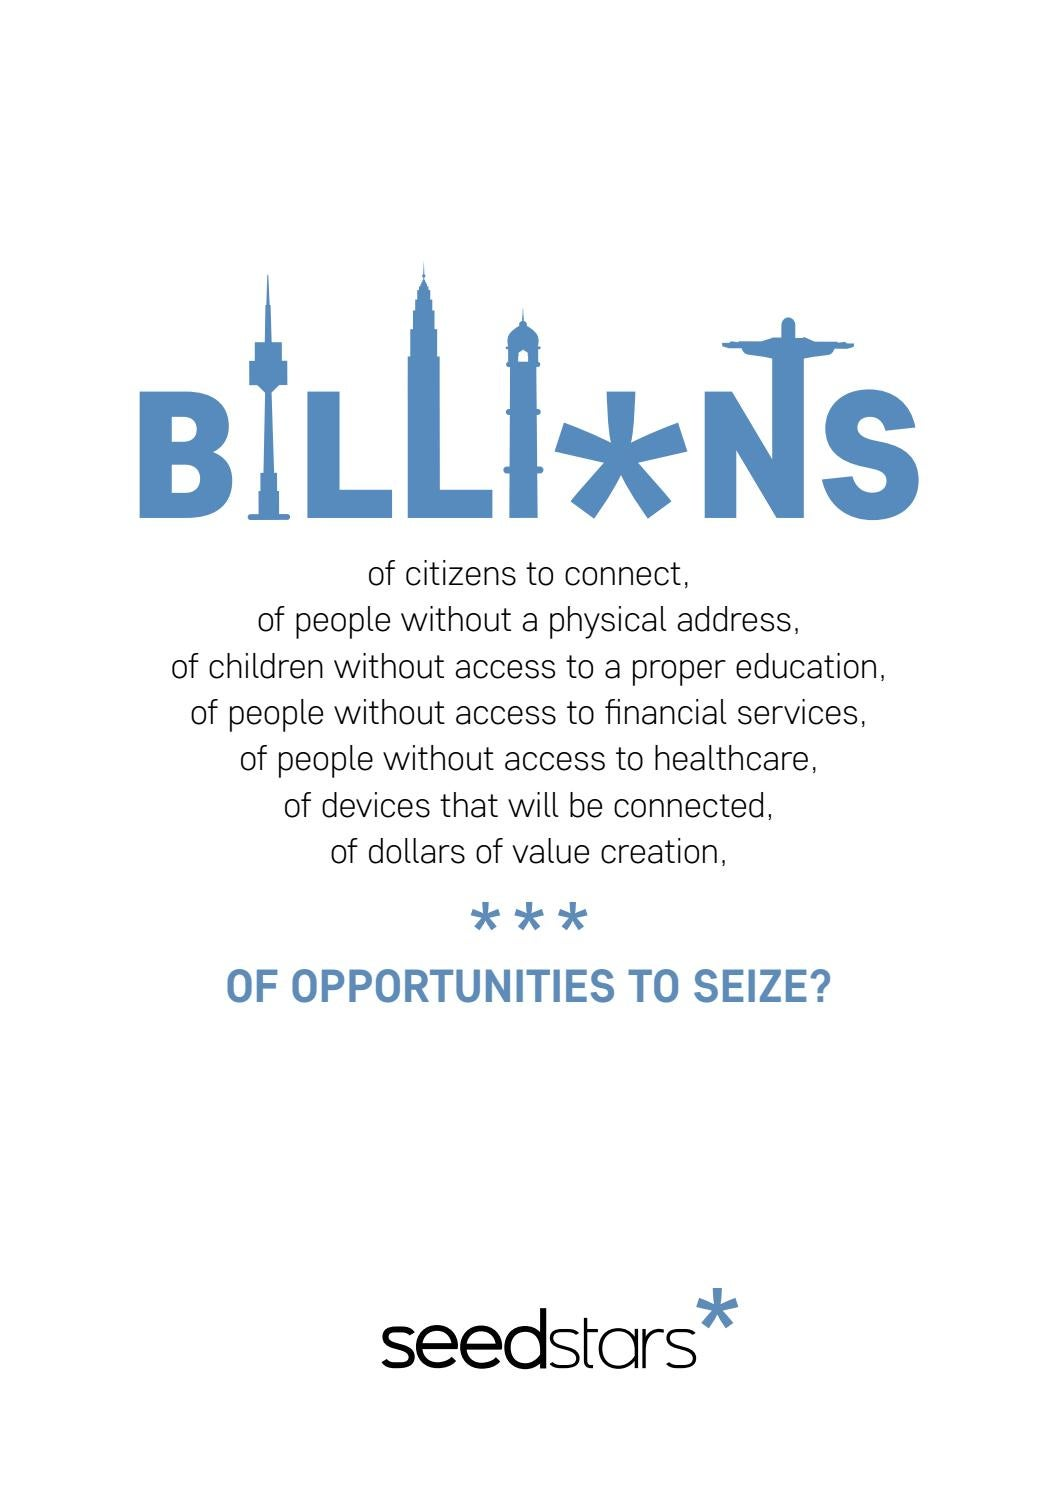 Billions of opportunities by Seedstars World - issuu